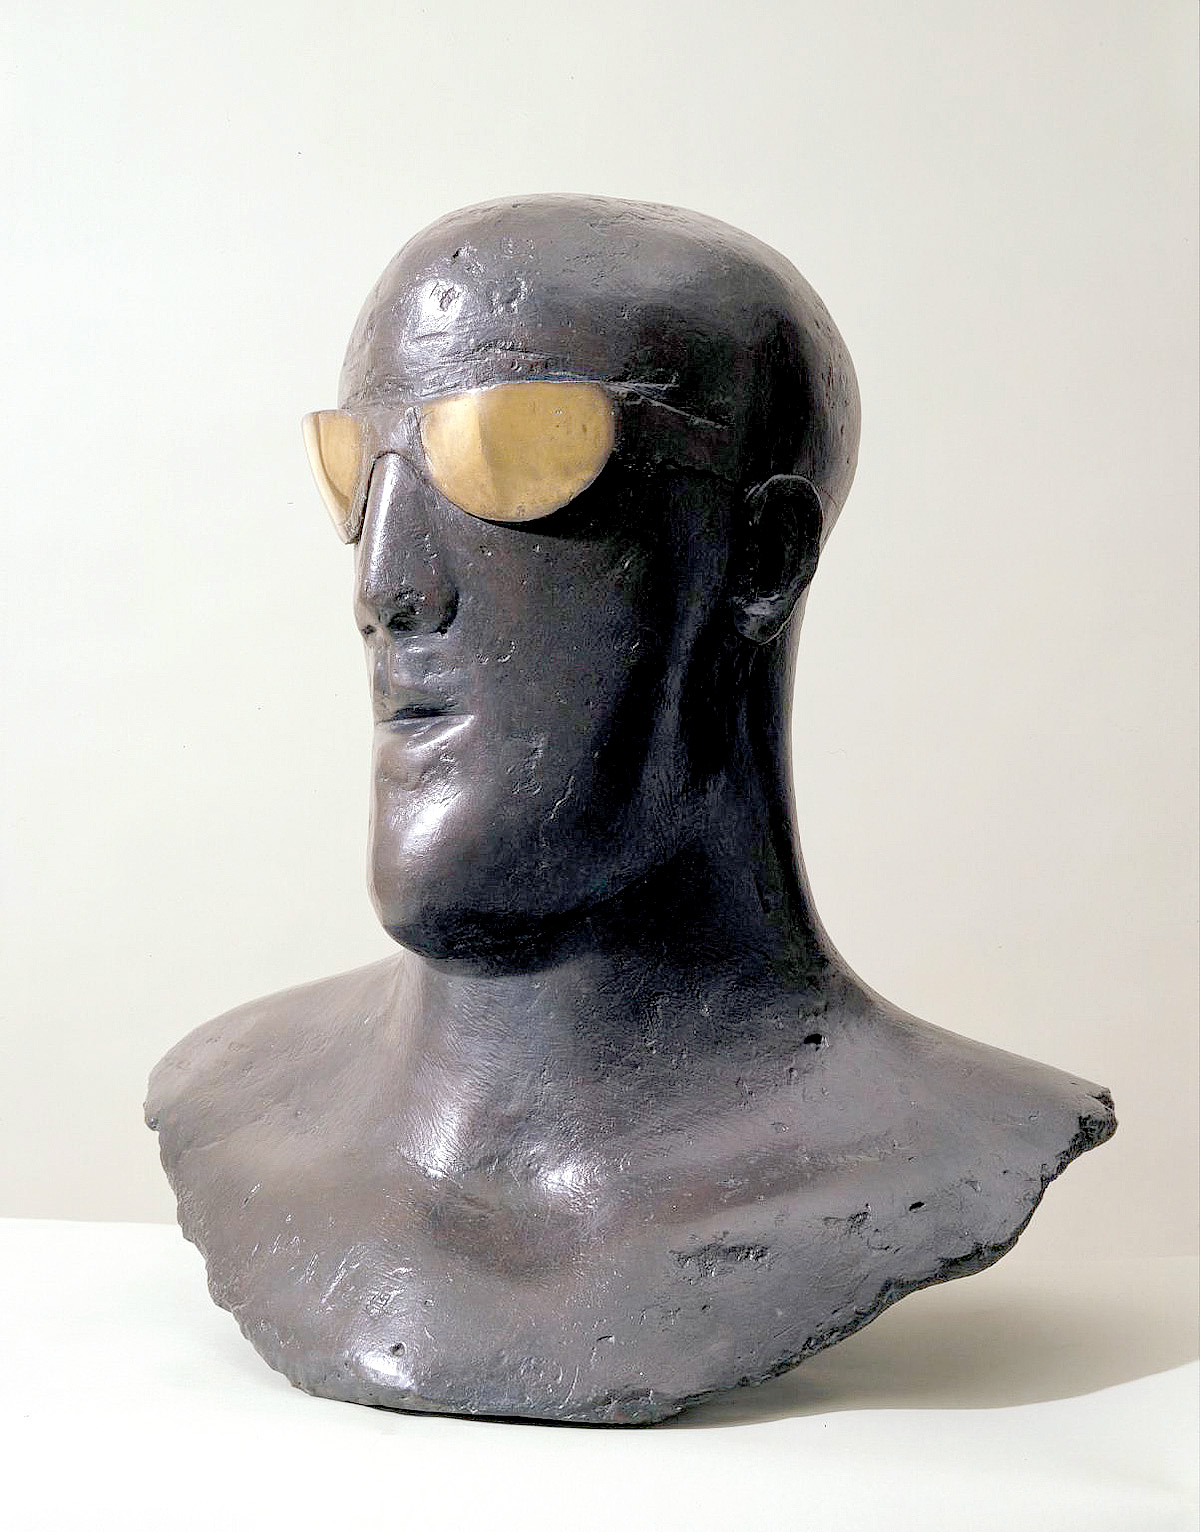 Goggle Head 1969 Dame Elisabeth Frink 1930-1993 Purchased 1998 https://www.tate.org.uk/art/work/T07396